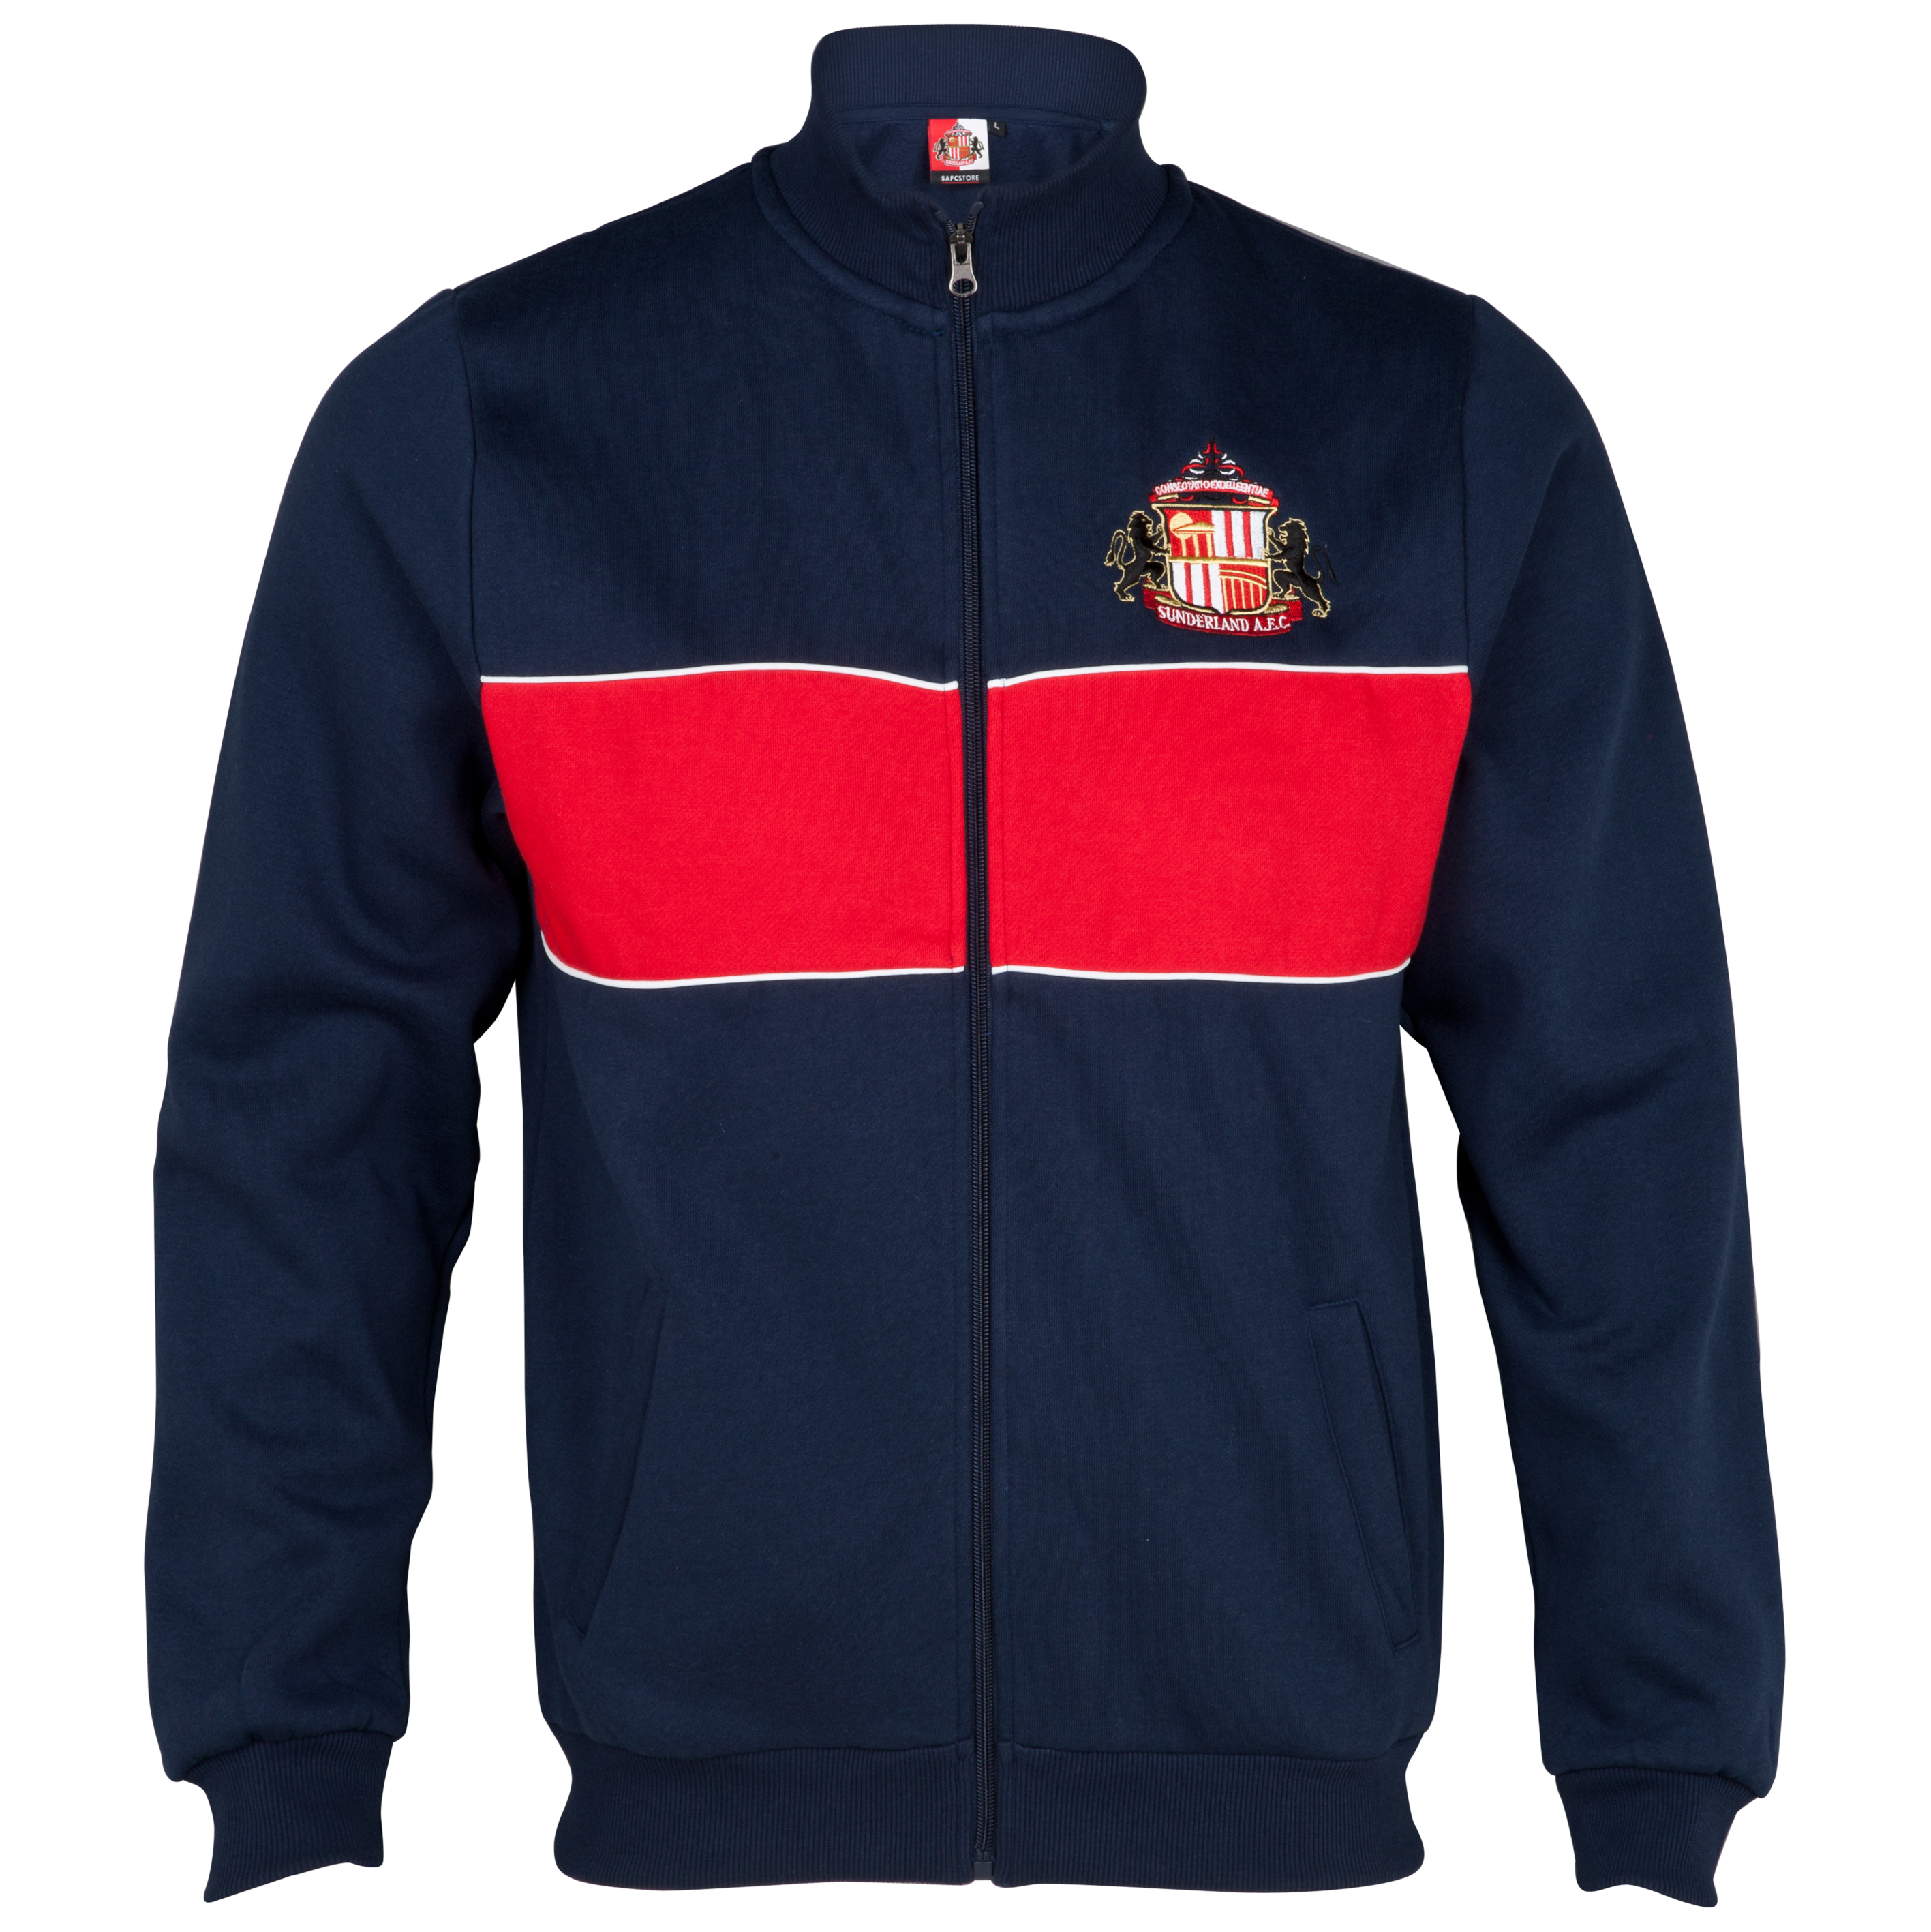 Sunderland Essential Game Track Top - Navy/Red - Infant Boys